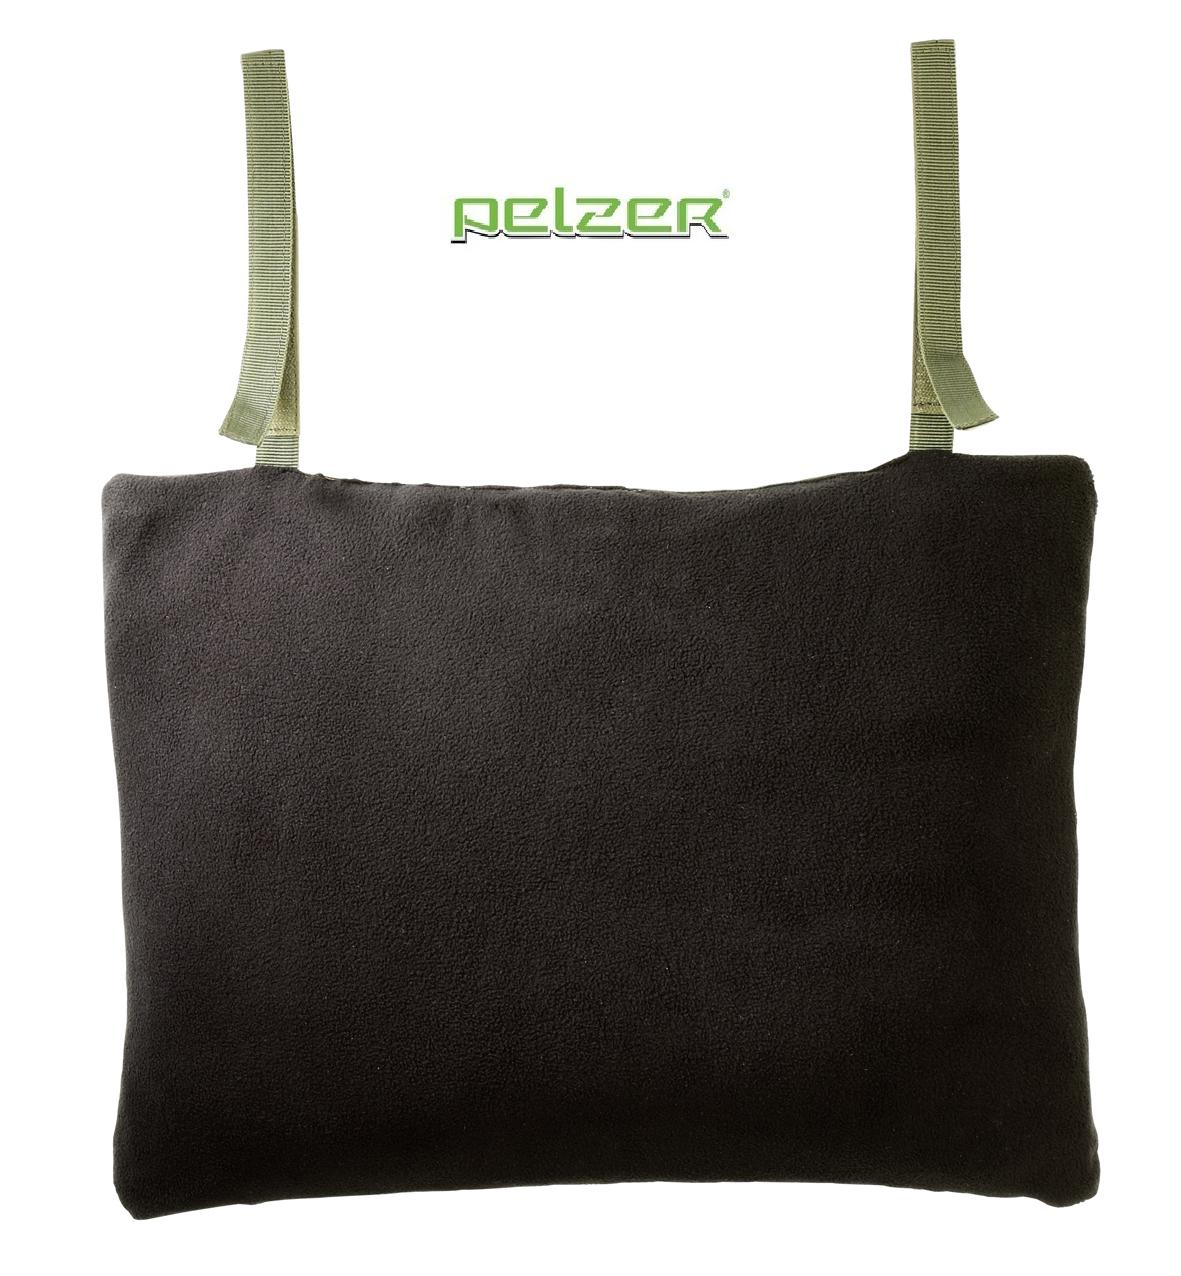 Polštář Pelzer Bed Chair Pillow